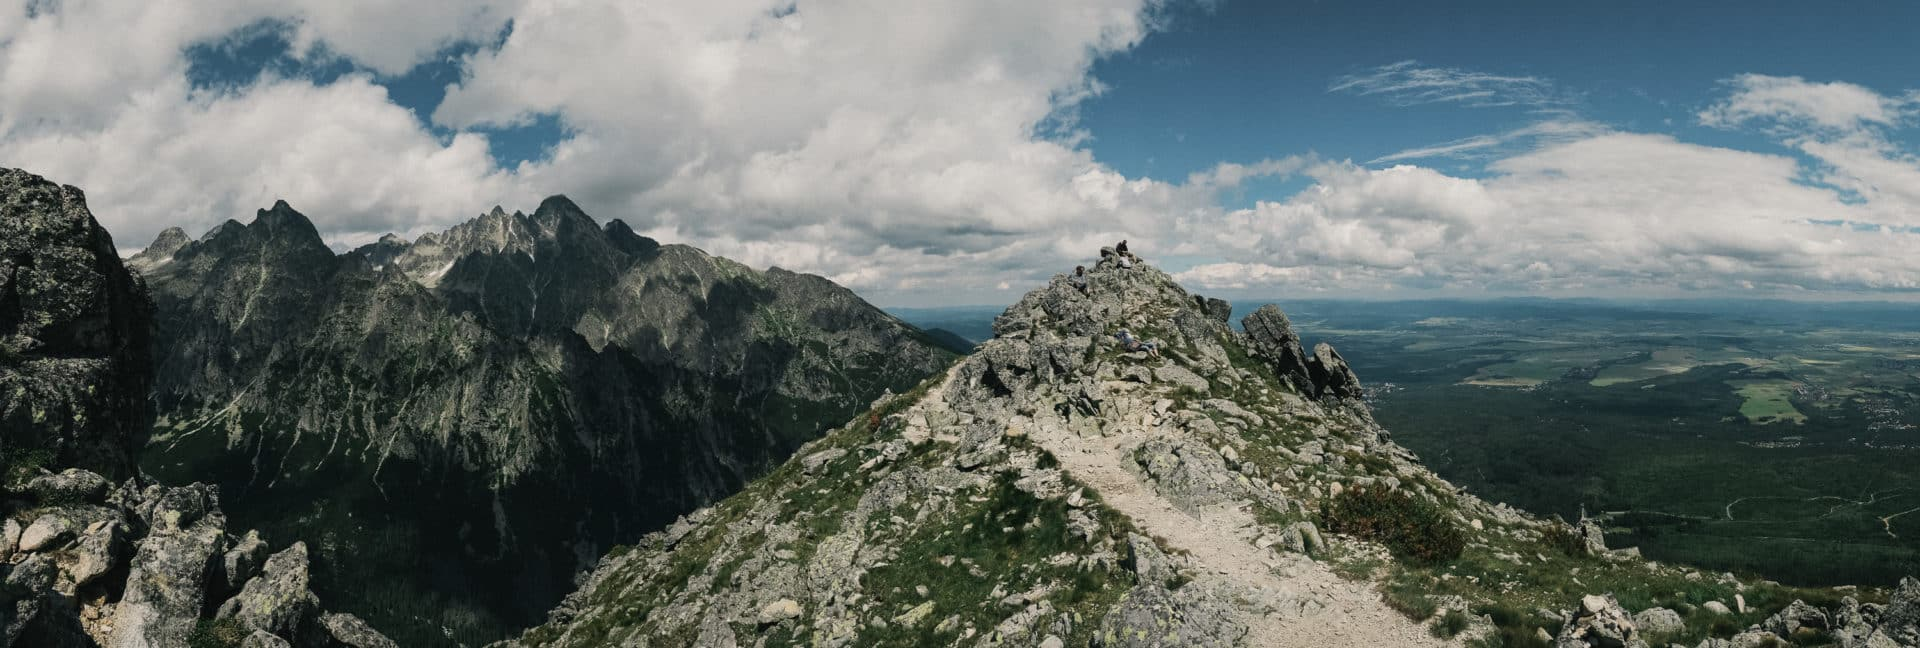 Lomnicky Peak ascent in the High Tatras